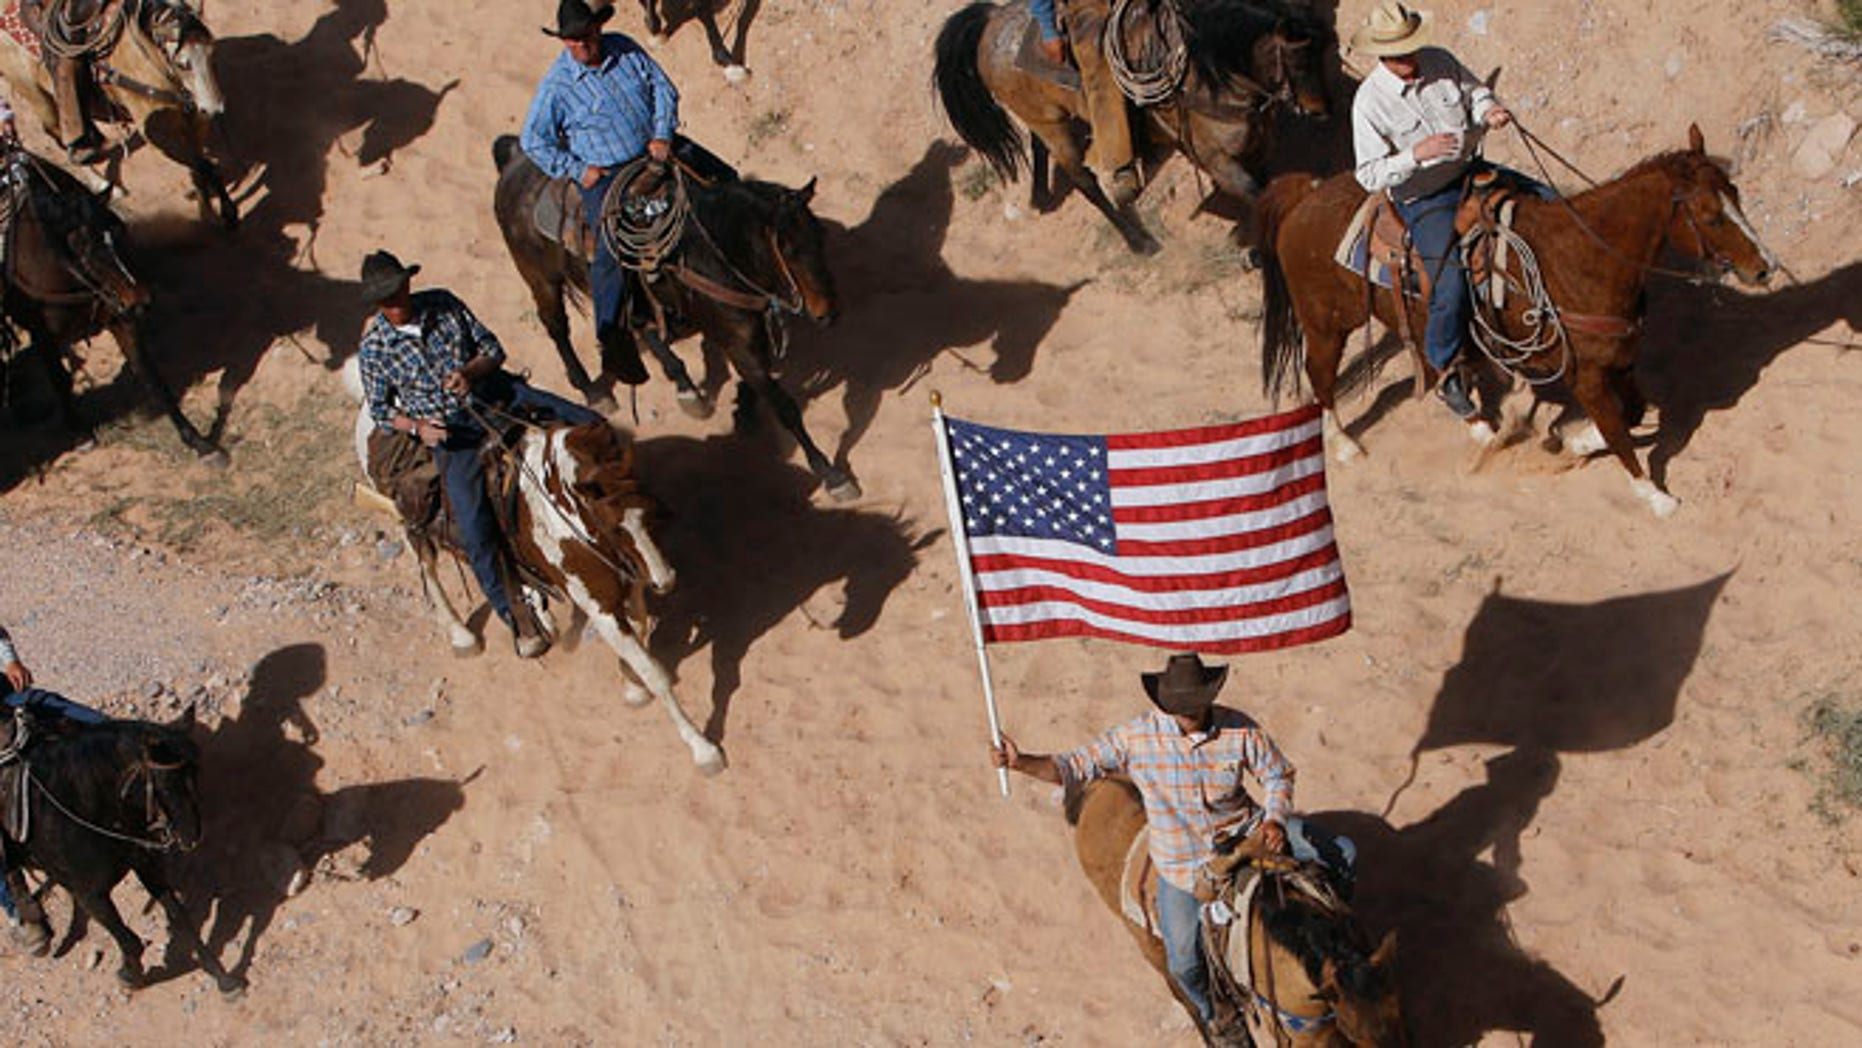 April 12, 2014: The Bundy family and their supporters fly the American flag as their cattle is released by the Bureau of Land Management.